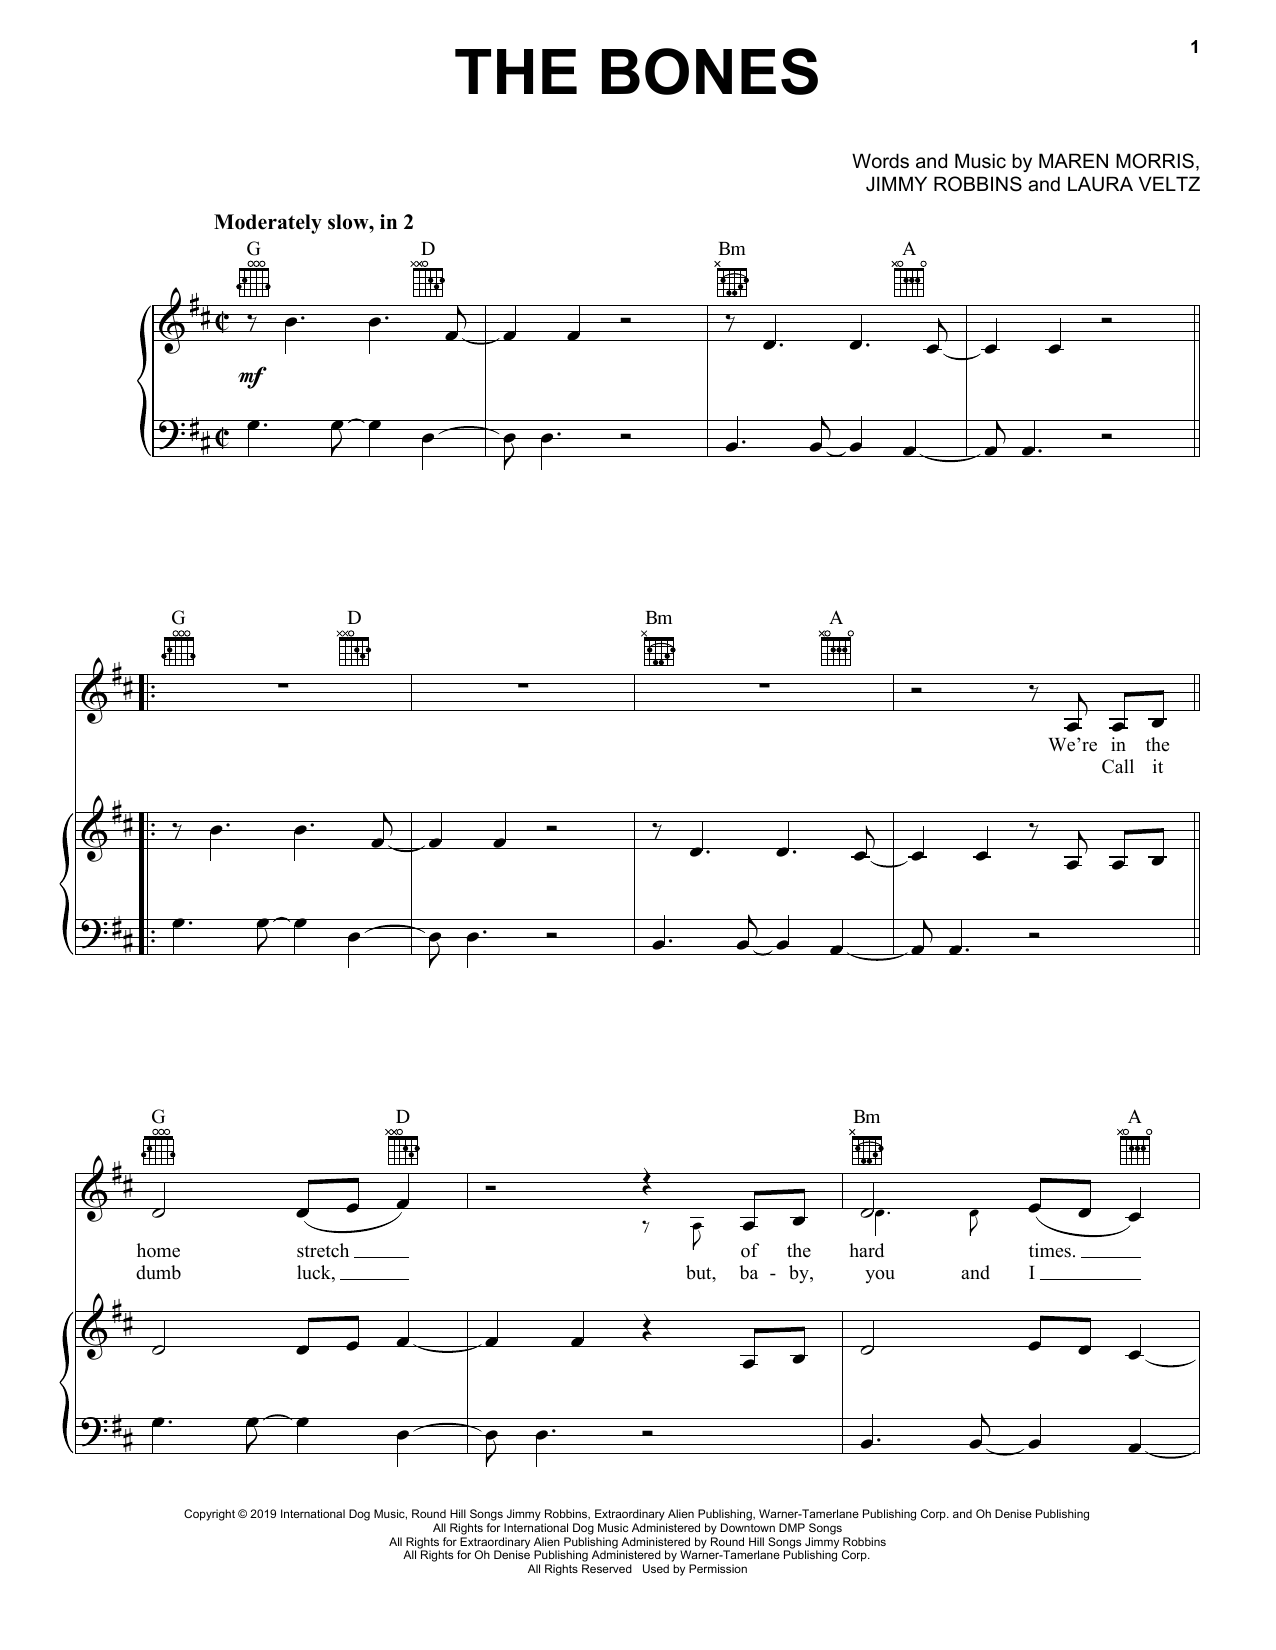 Maren Morris The Bones sheet music notes and chords